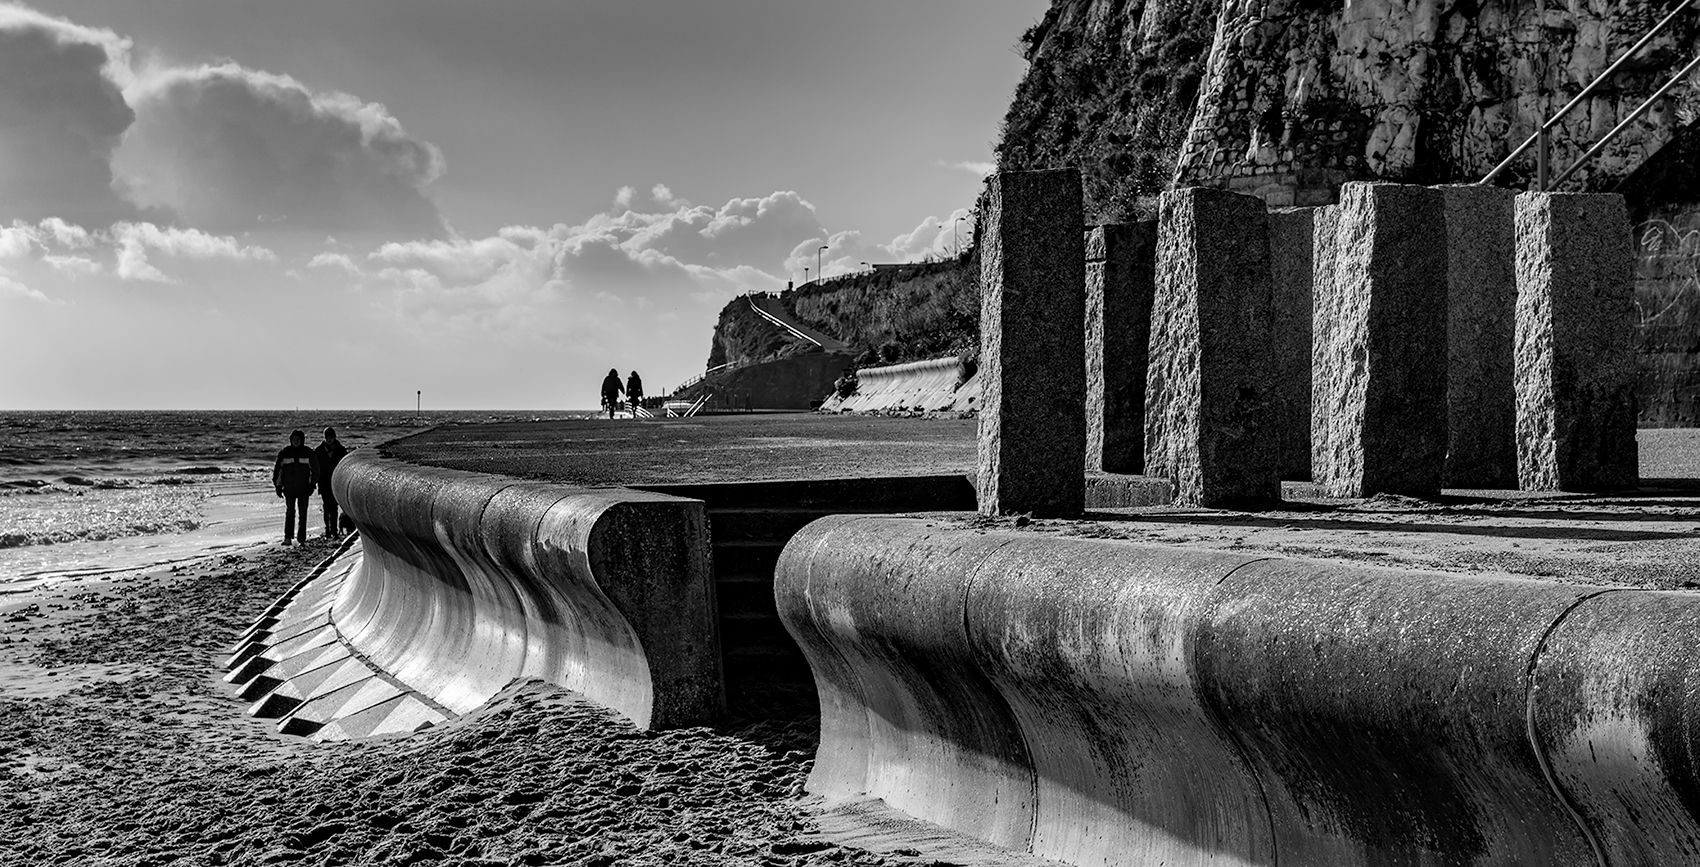 explore black & white collections and themes in our photographic art gallery